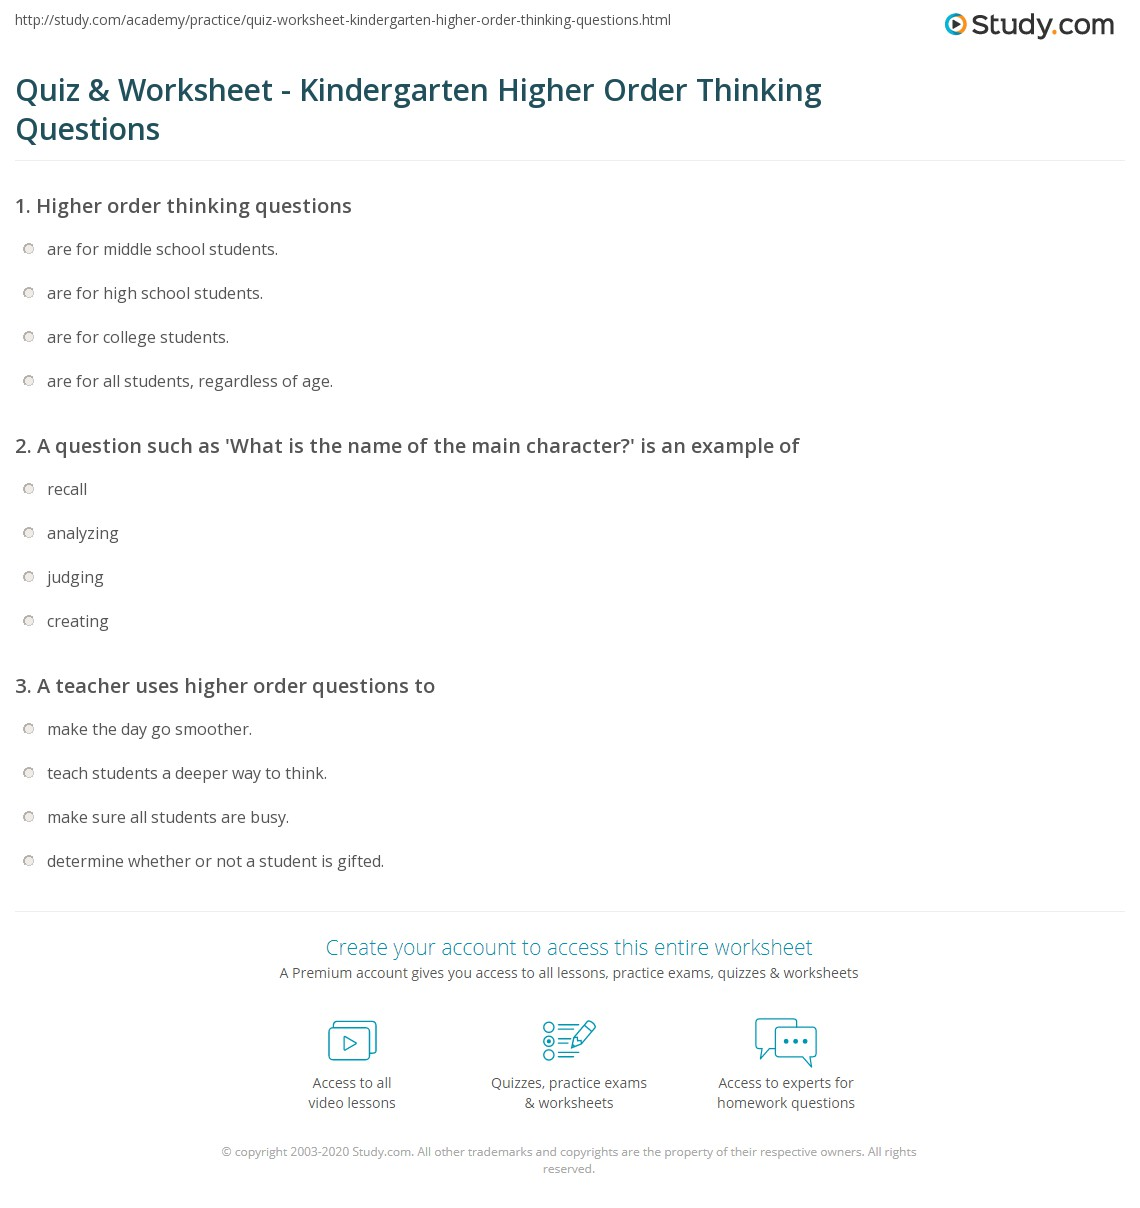 Higher Order Thinking Worksheet